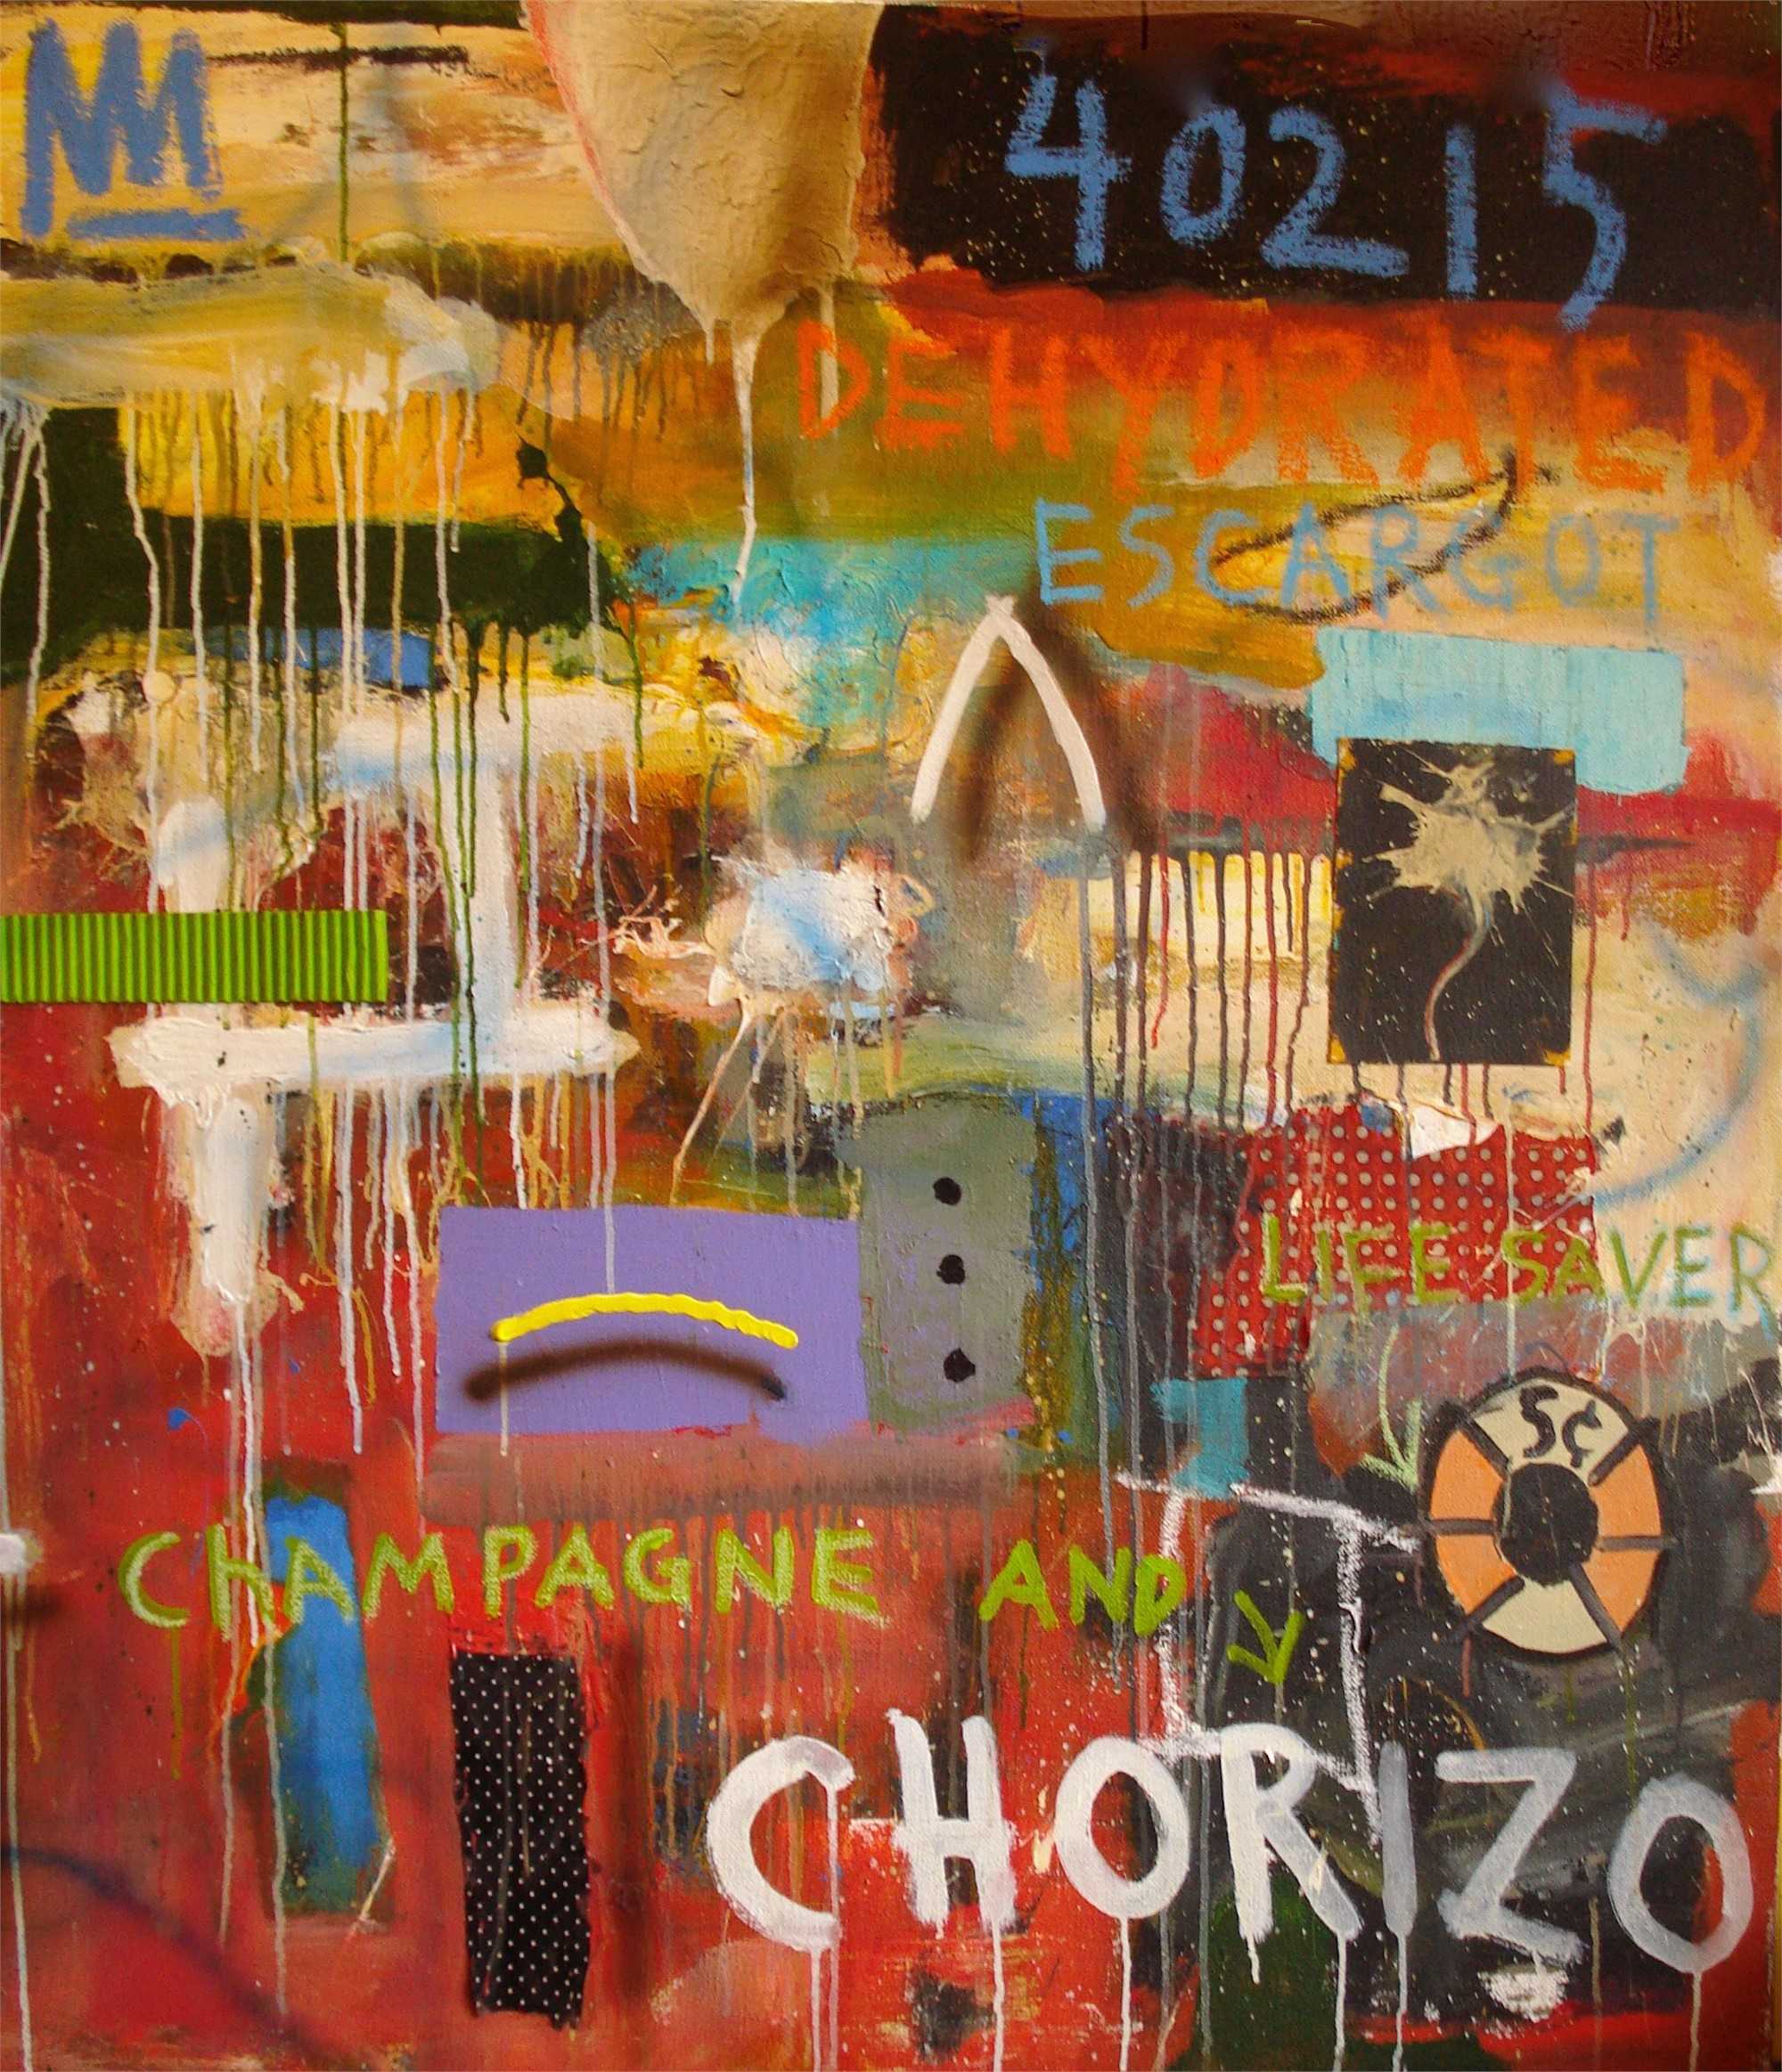 Champagne and Chorizo by Michael Snodgrass